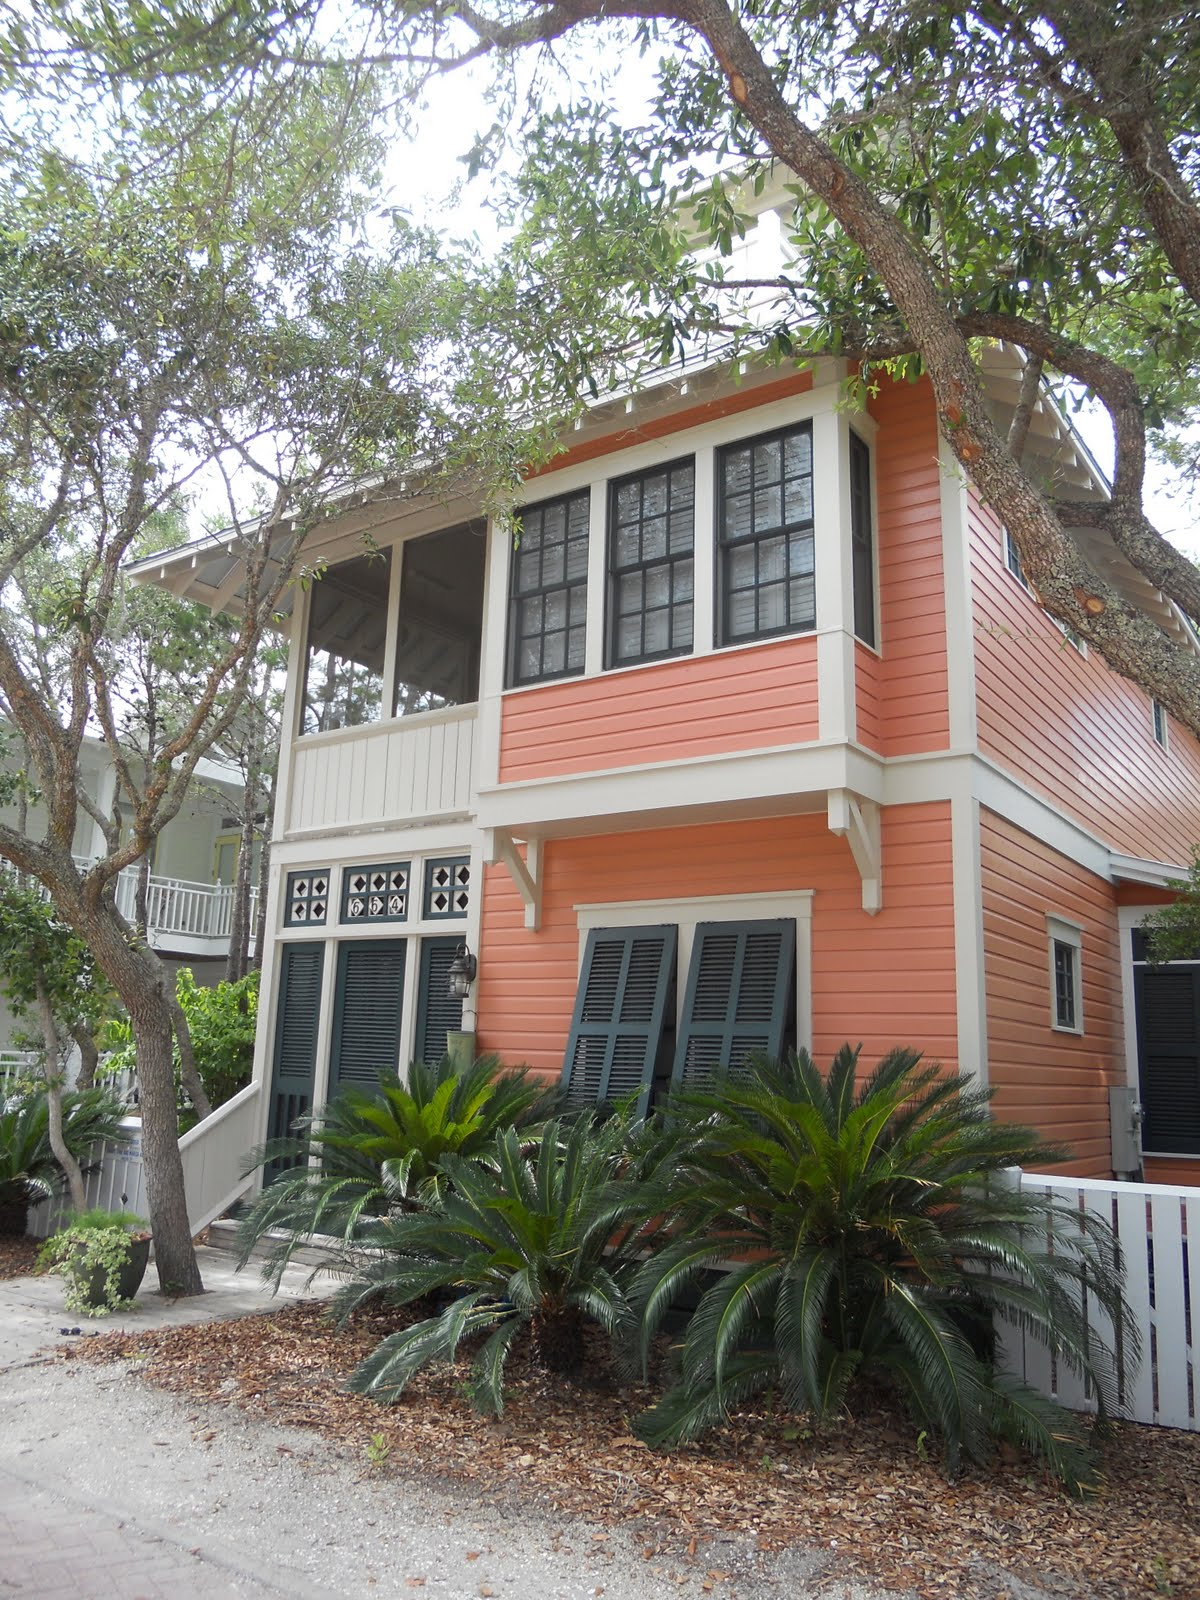 Design dump a stroll through seaside - Florida home exterior paint colors ...